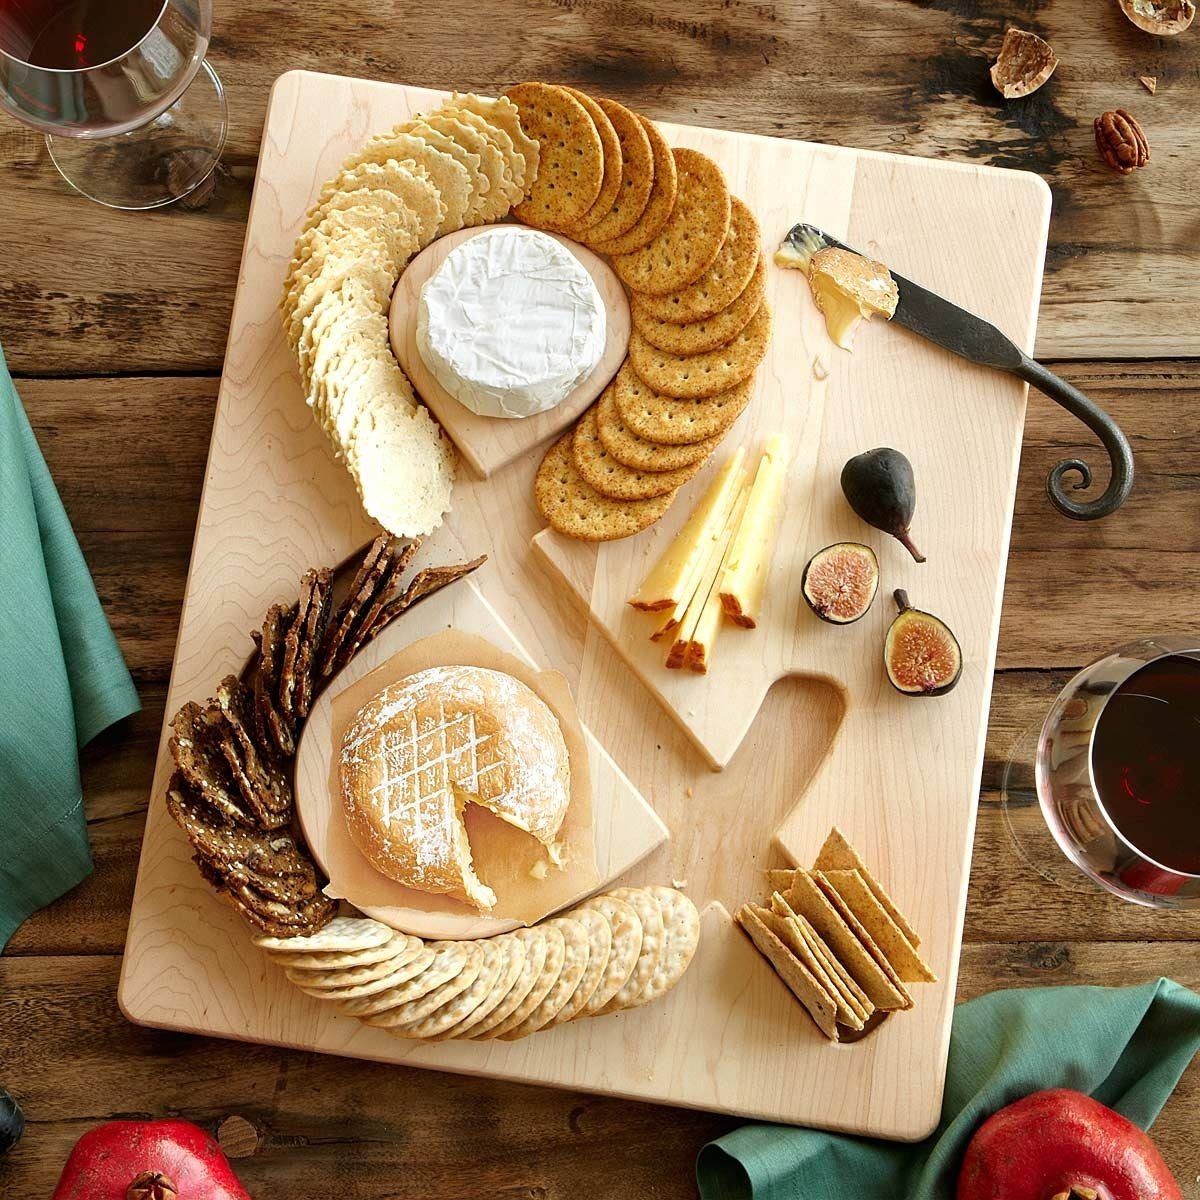 10 Fantastic Cheese And Cracker Tray Ideas cheese crackers serving board cheese and crackers maple wood